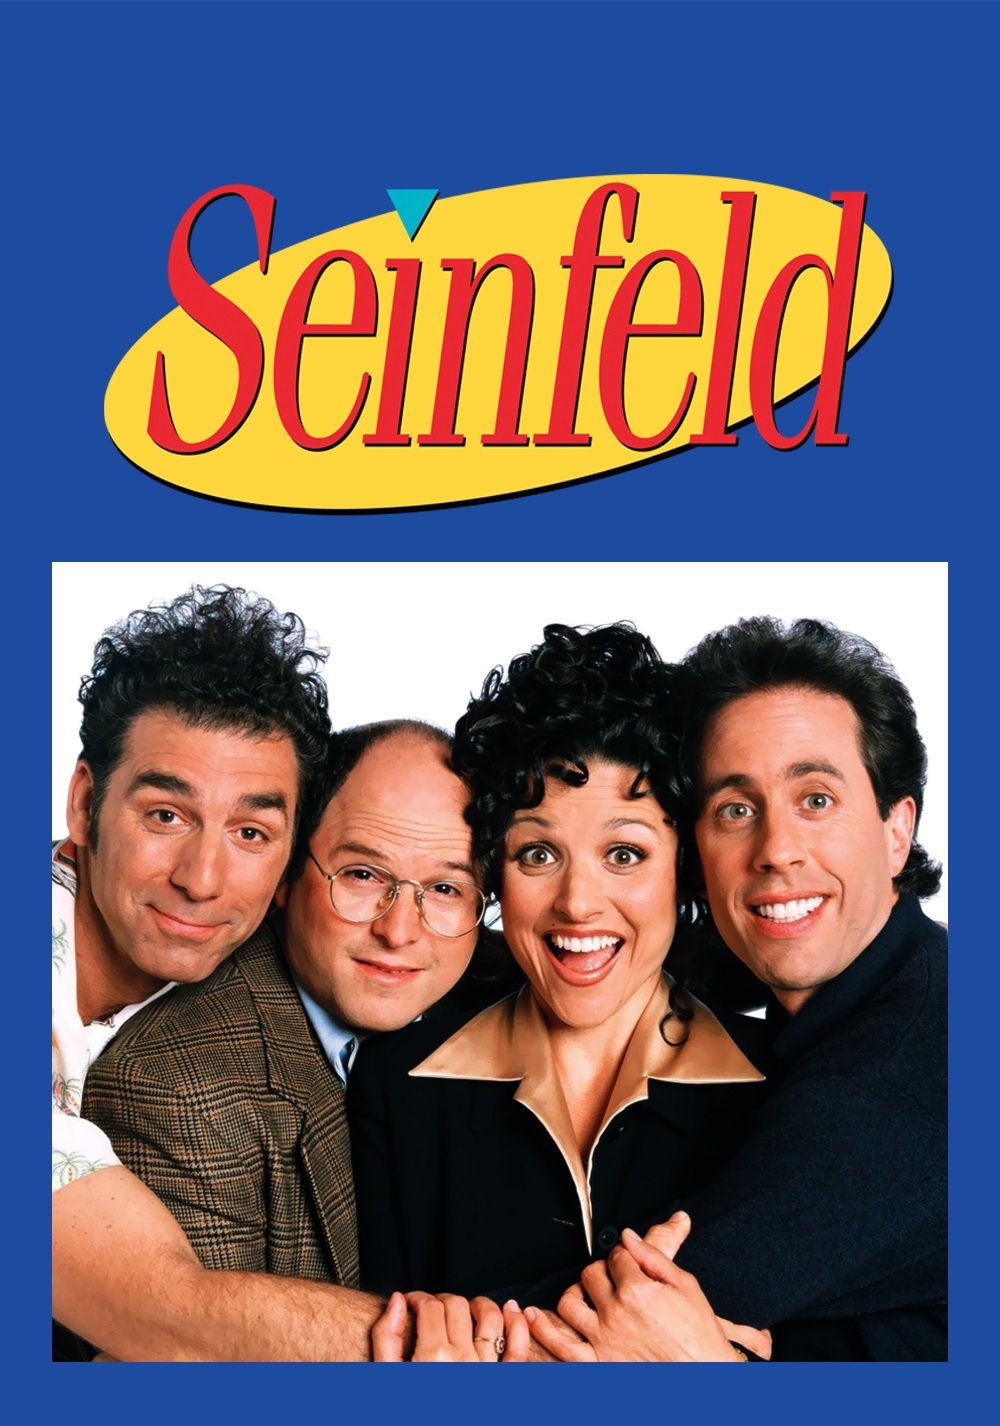 It girls - Seinfeld - Séries antigas - Outono - Street Style - https://stealthelook.com.br